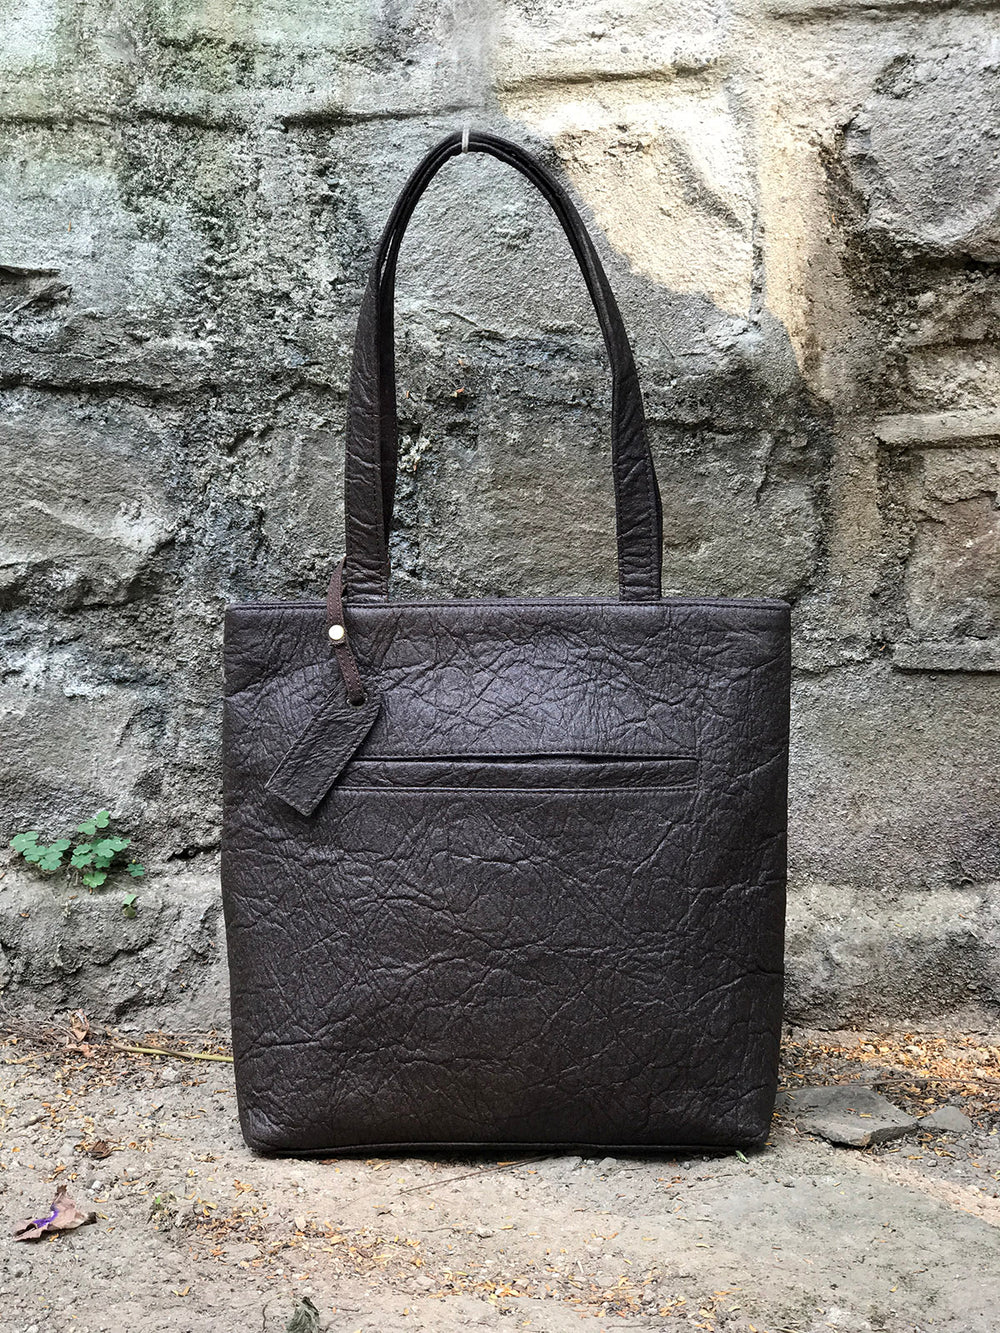 Pinatex Tote - single exclusive piece